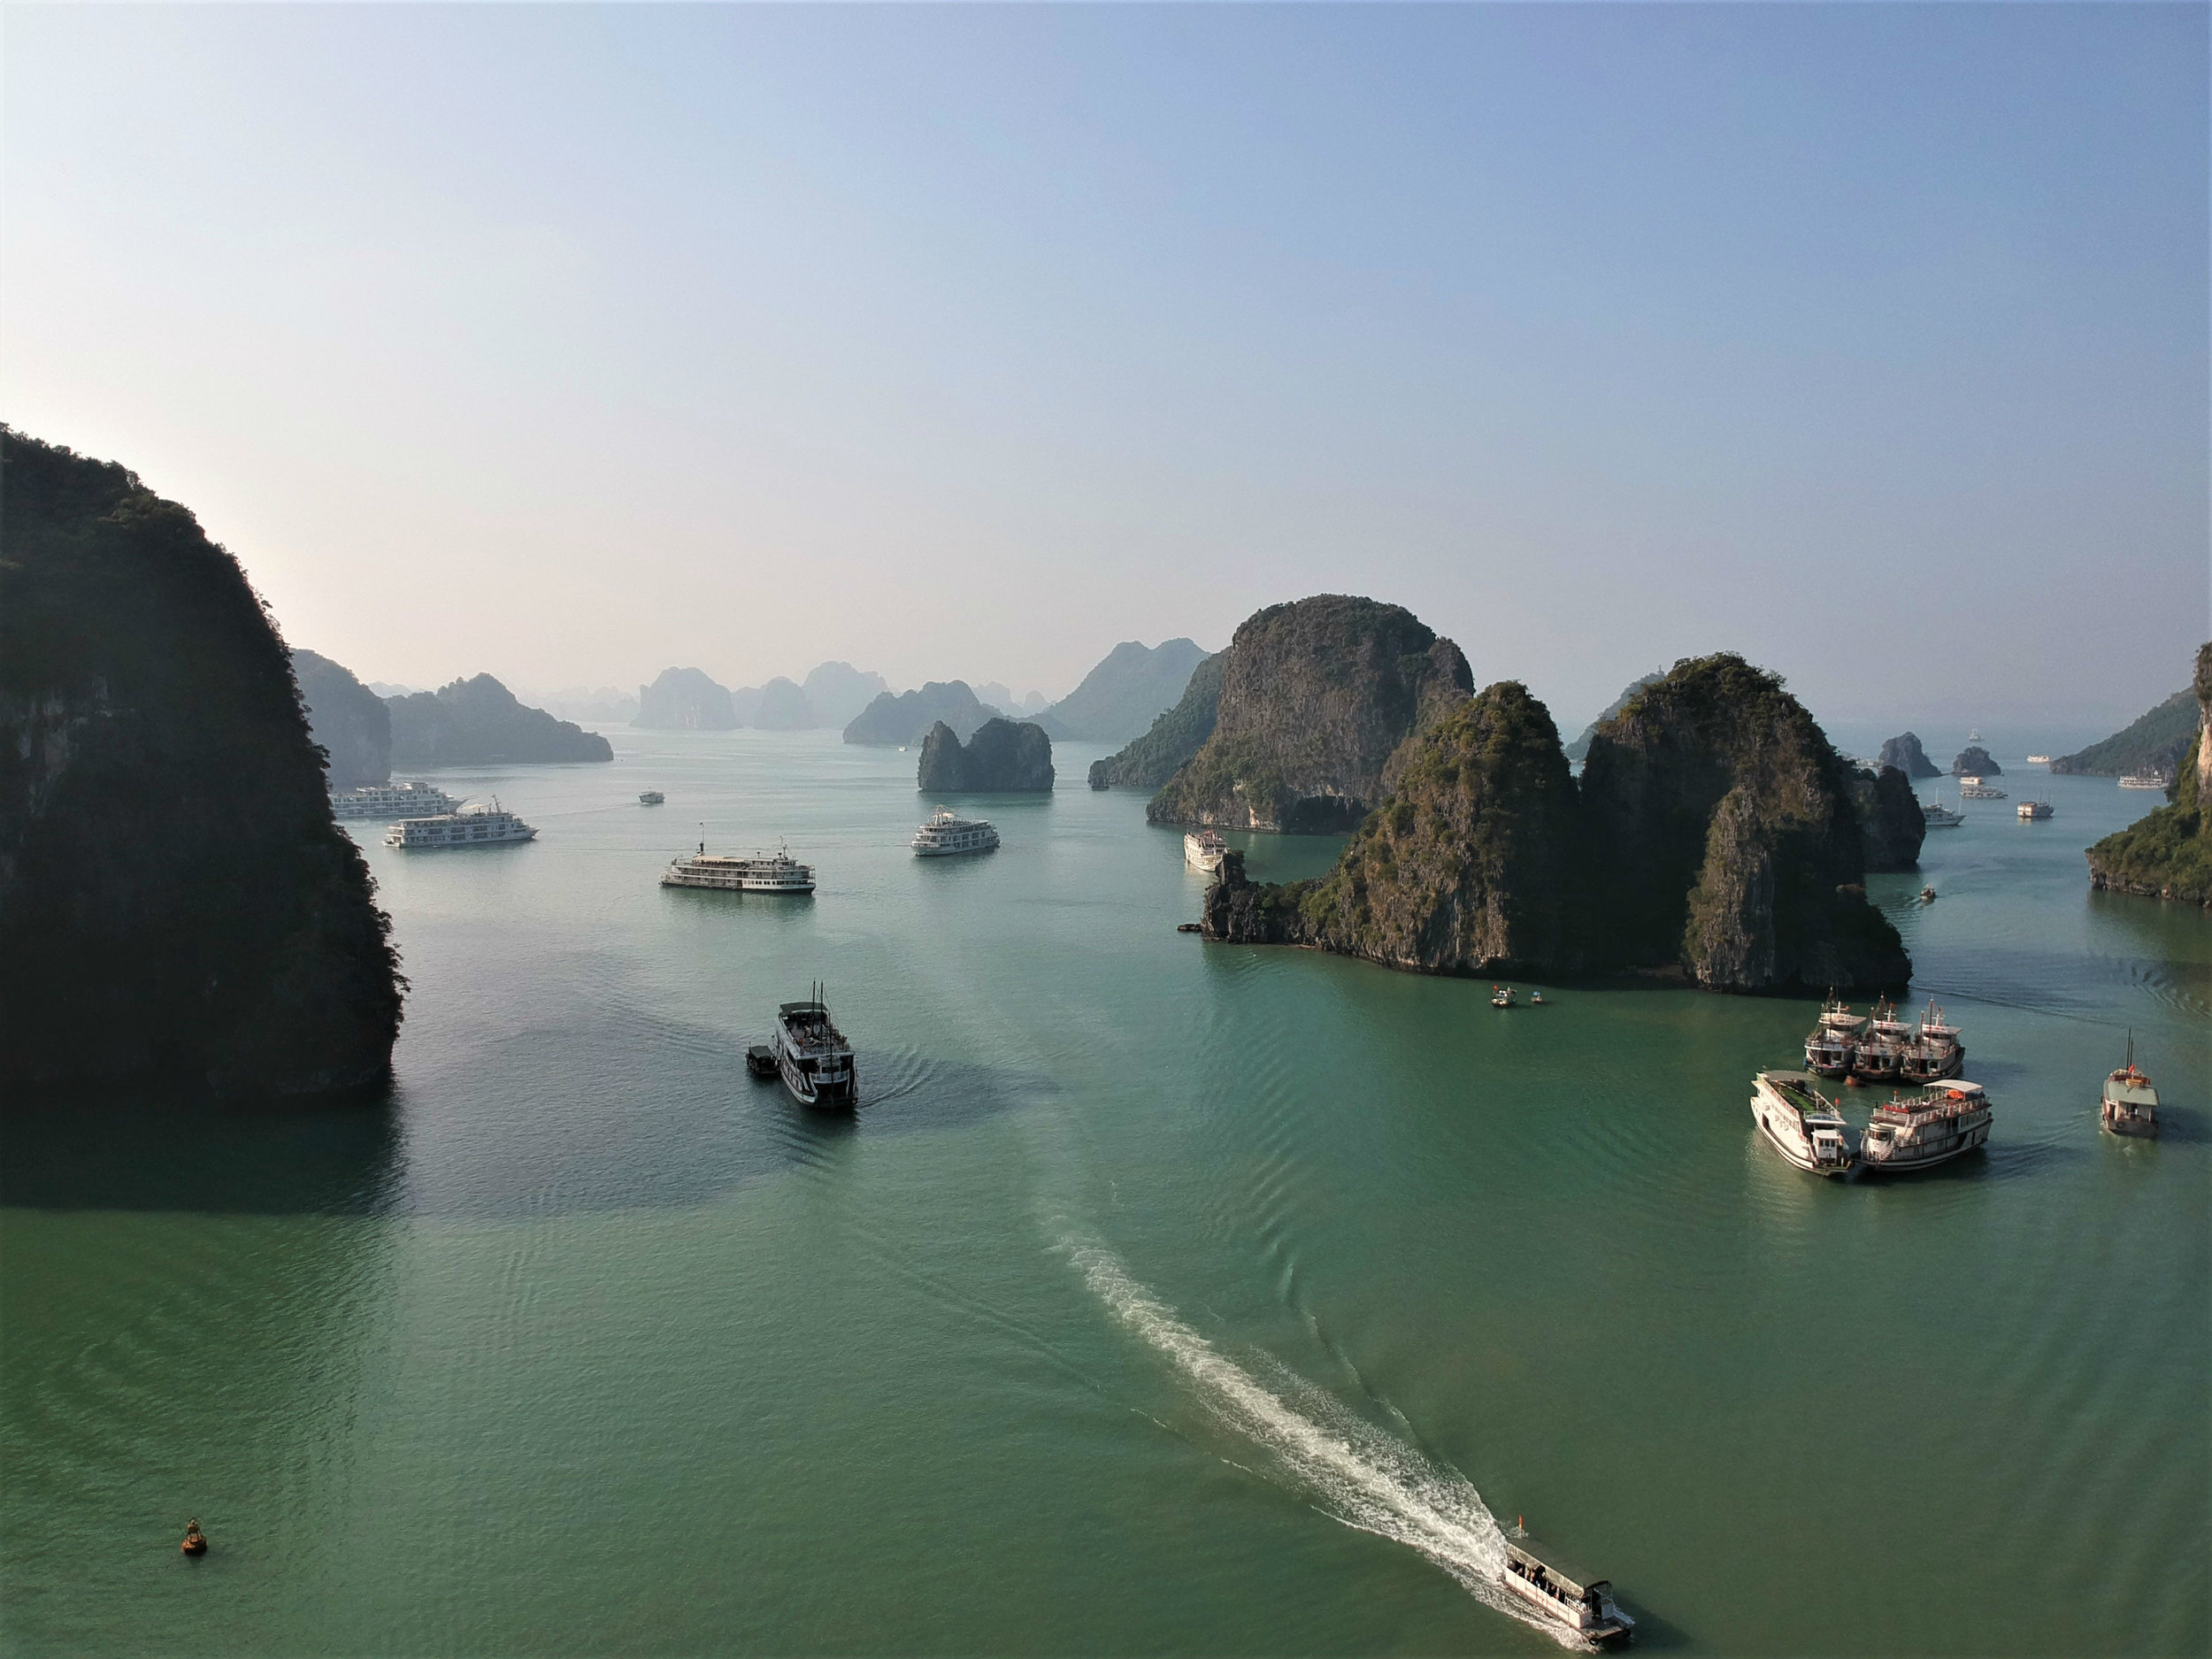 Sun set at Ha Long Bay (drone picture)